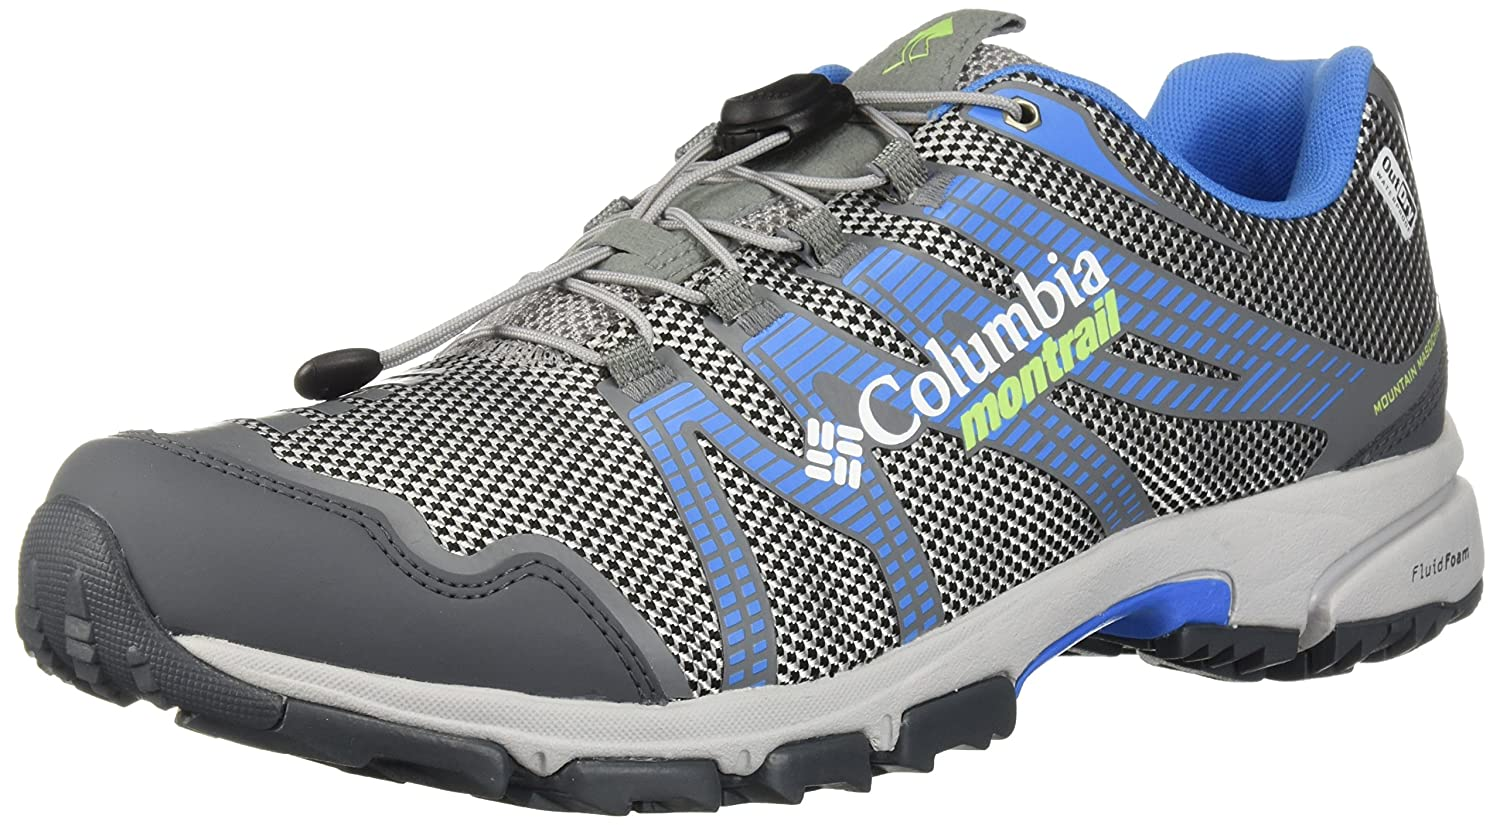 Columbia Montrail Women's Mountain Masochist IV Outdry Trail Running Shoe B072WFVFXG 9.5 B(M) US|Steam, Jade Lime